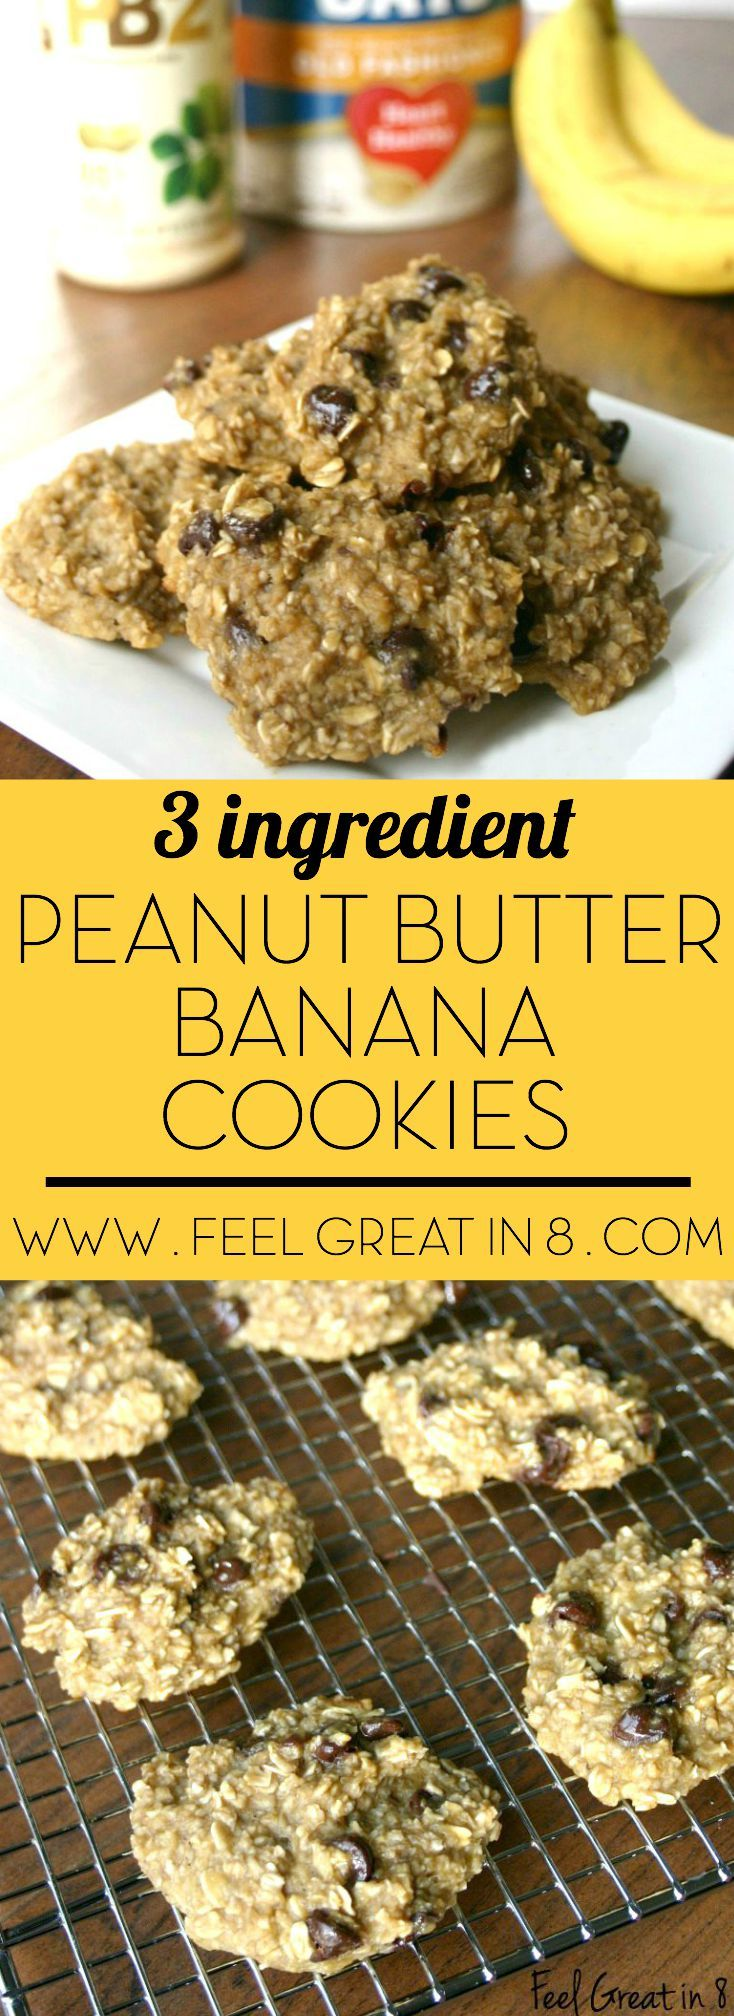 3 Ingredient Peanut Butter Banana Cookies - Made with only bananas, oats, PB2 (and your choice of mix-ins), these cookies are less than 50 calories each and healthy enough to be breakfast! | Feel Great in 8 - Healthy Real Food Recipes . Added chia, choc chips, coconut, raisins, and walnuts--SO good!